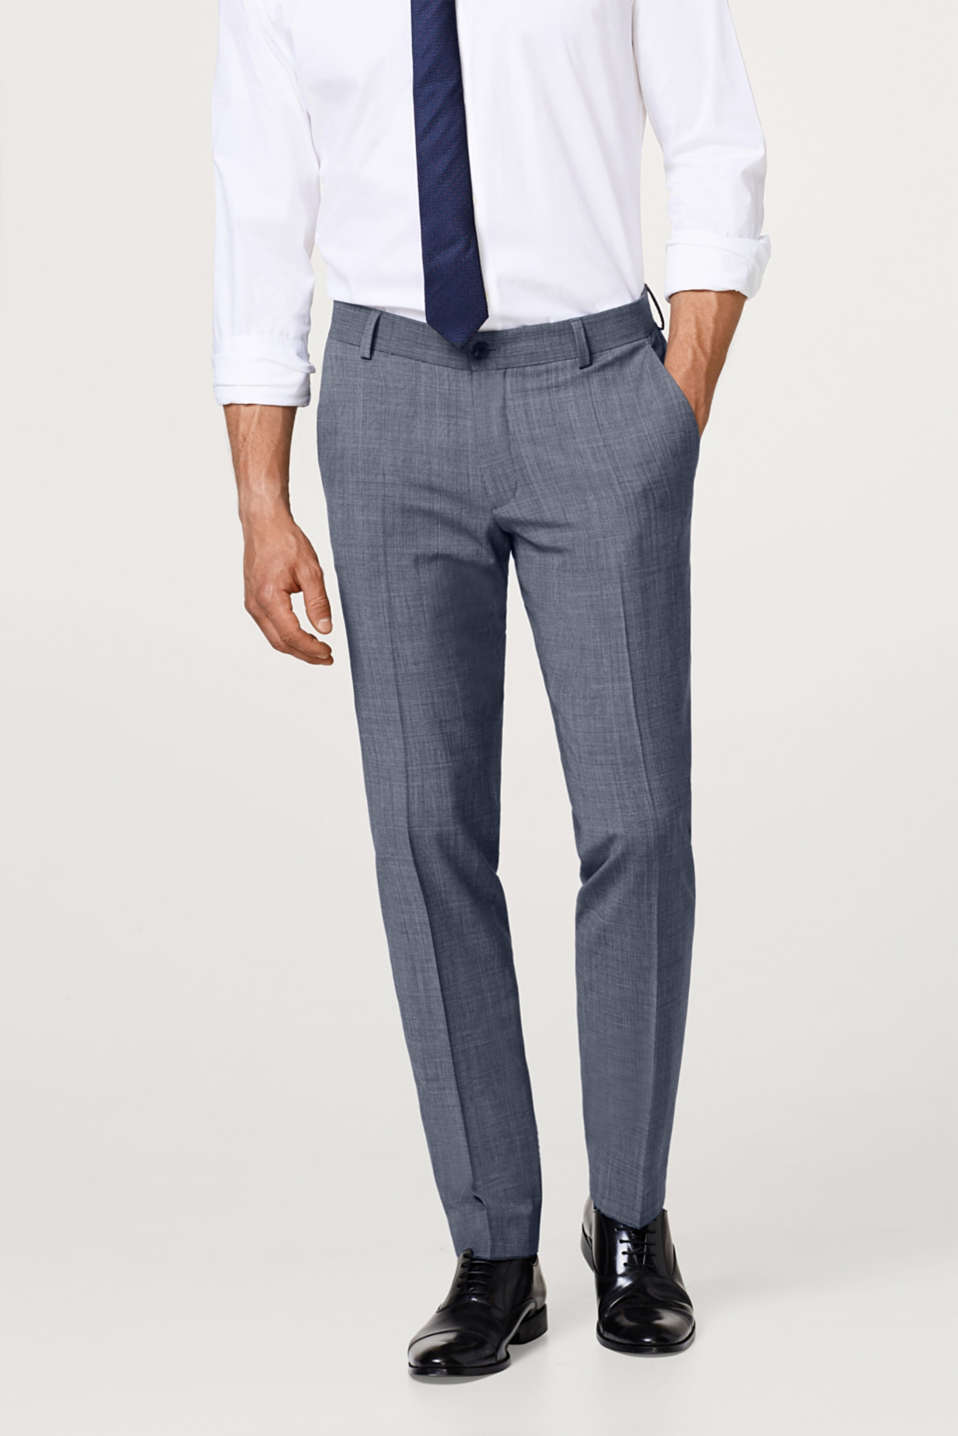 Esprit - Suit trouser with a Prince of Wales pattern and wool